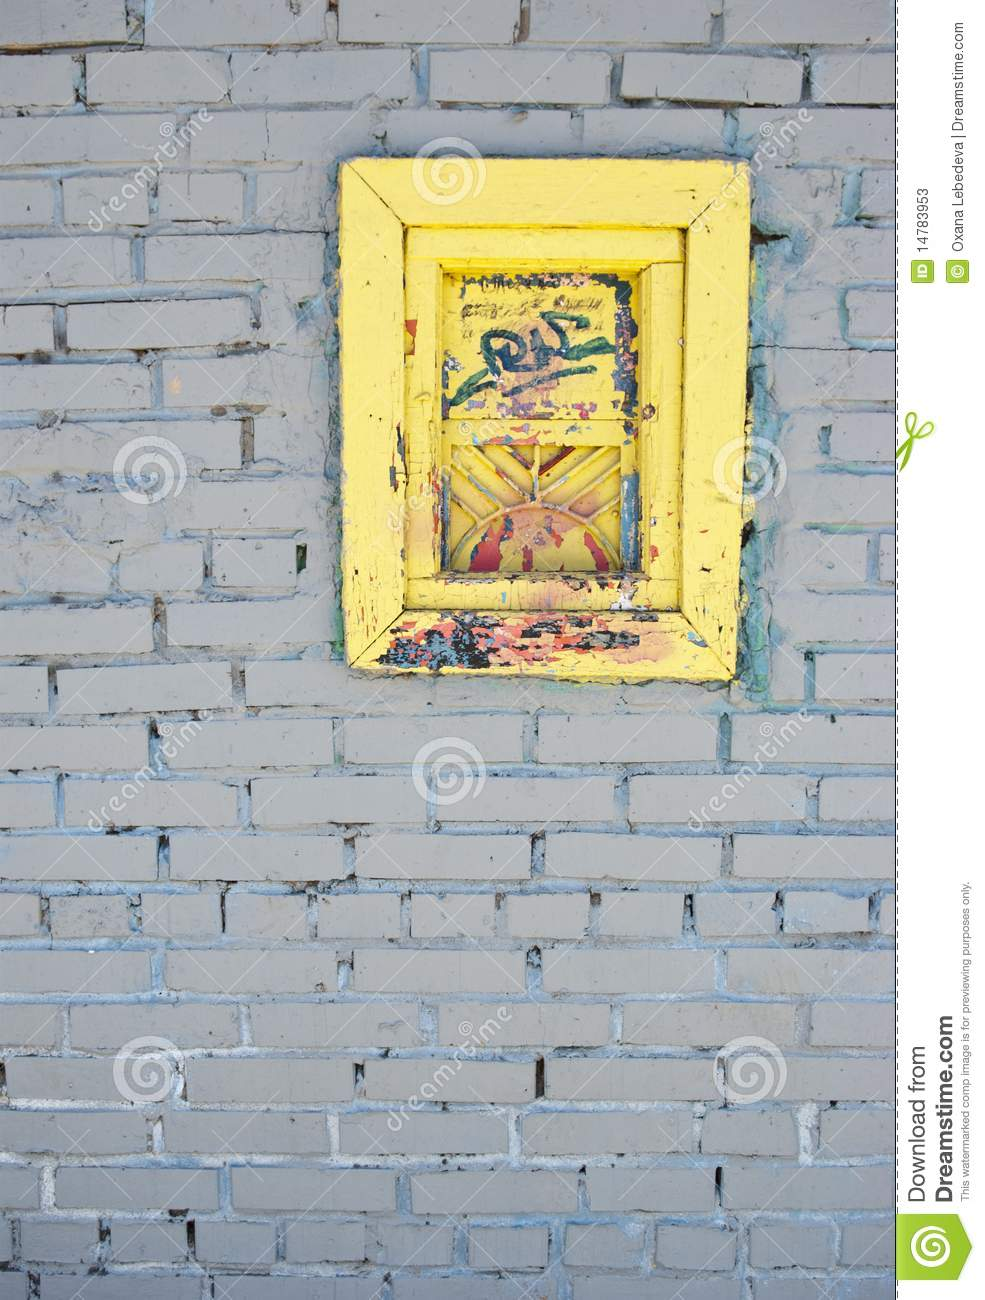 White Brick Wall With Old Window Stock Image - Image of architecture ...